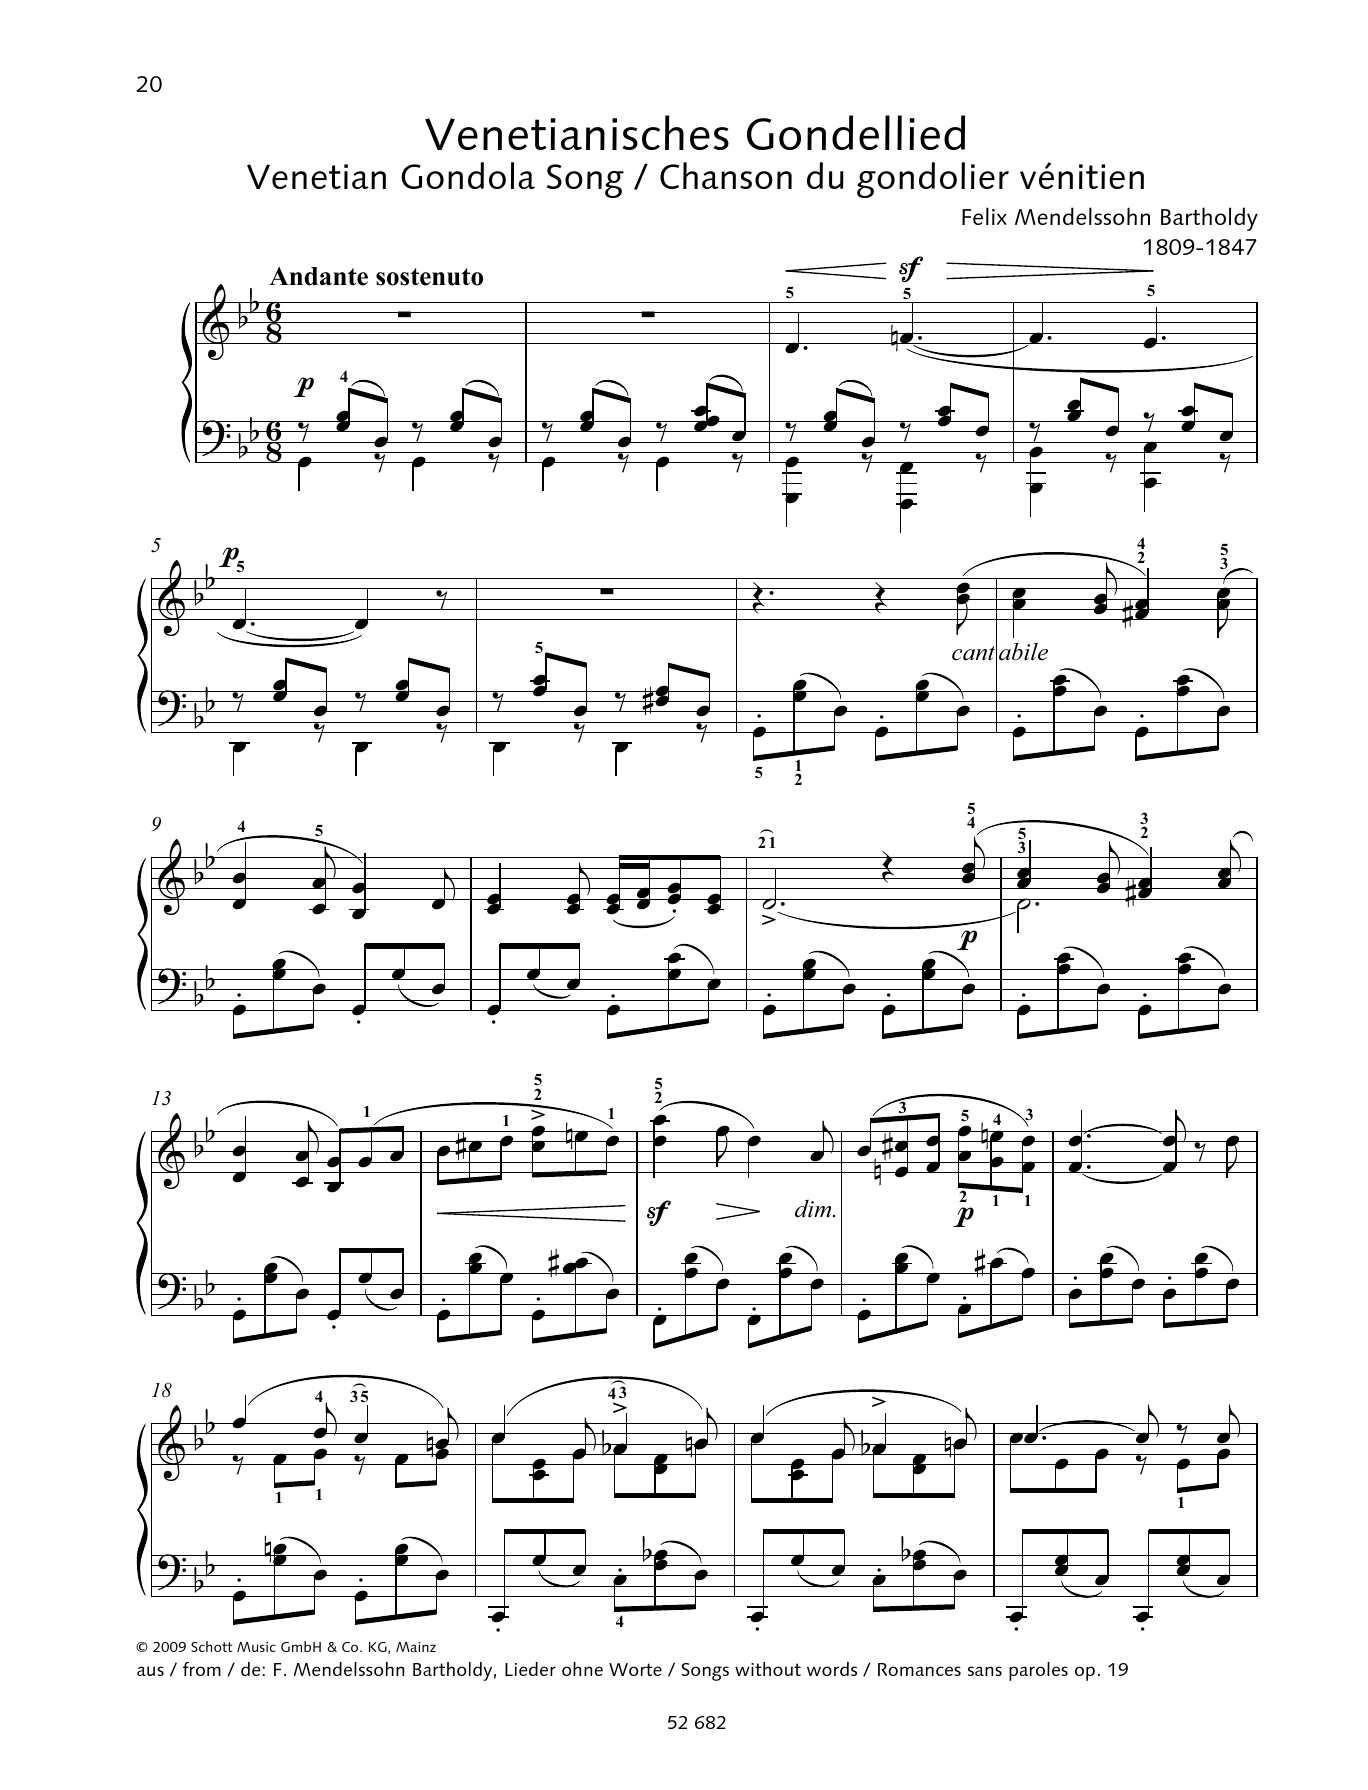 Venetian Gondola Song in G minor Sheet Music